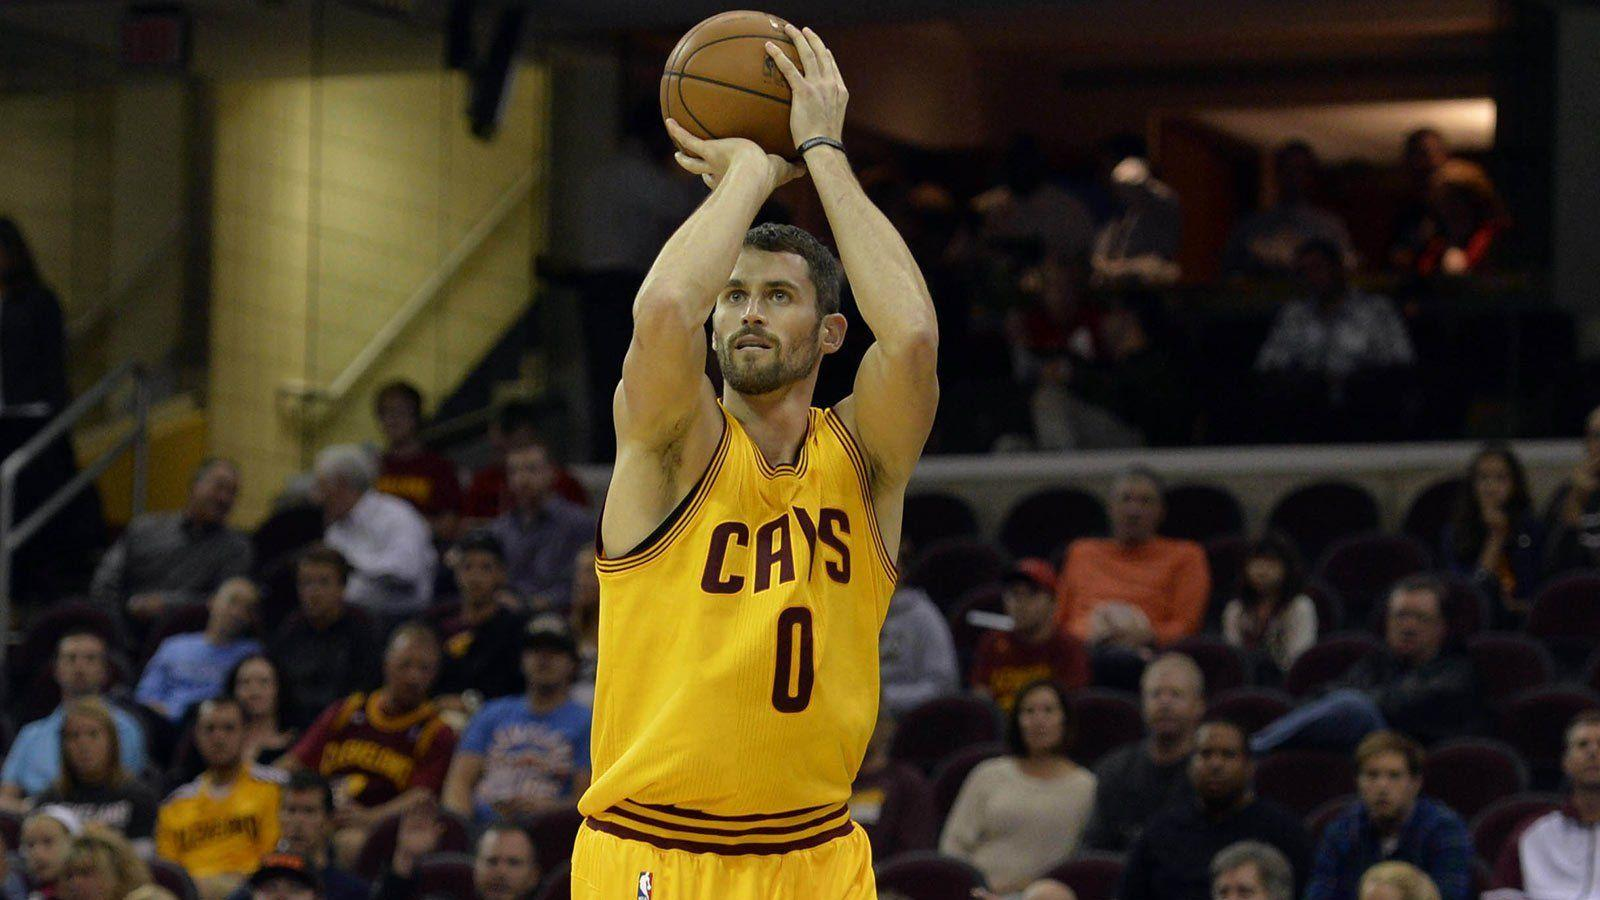 Kevin Love Wallpaper Hd : Kevin Love 2016 Wallpapers - Wallpaper cave